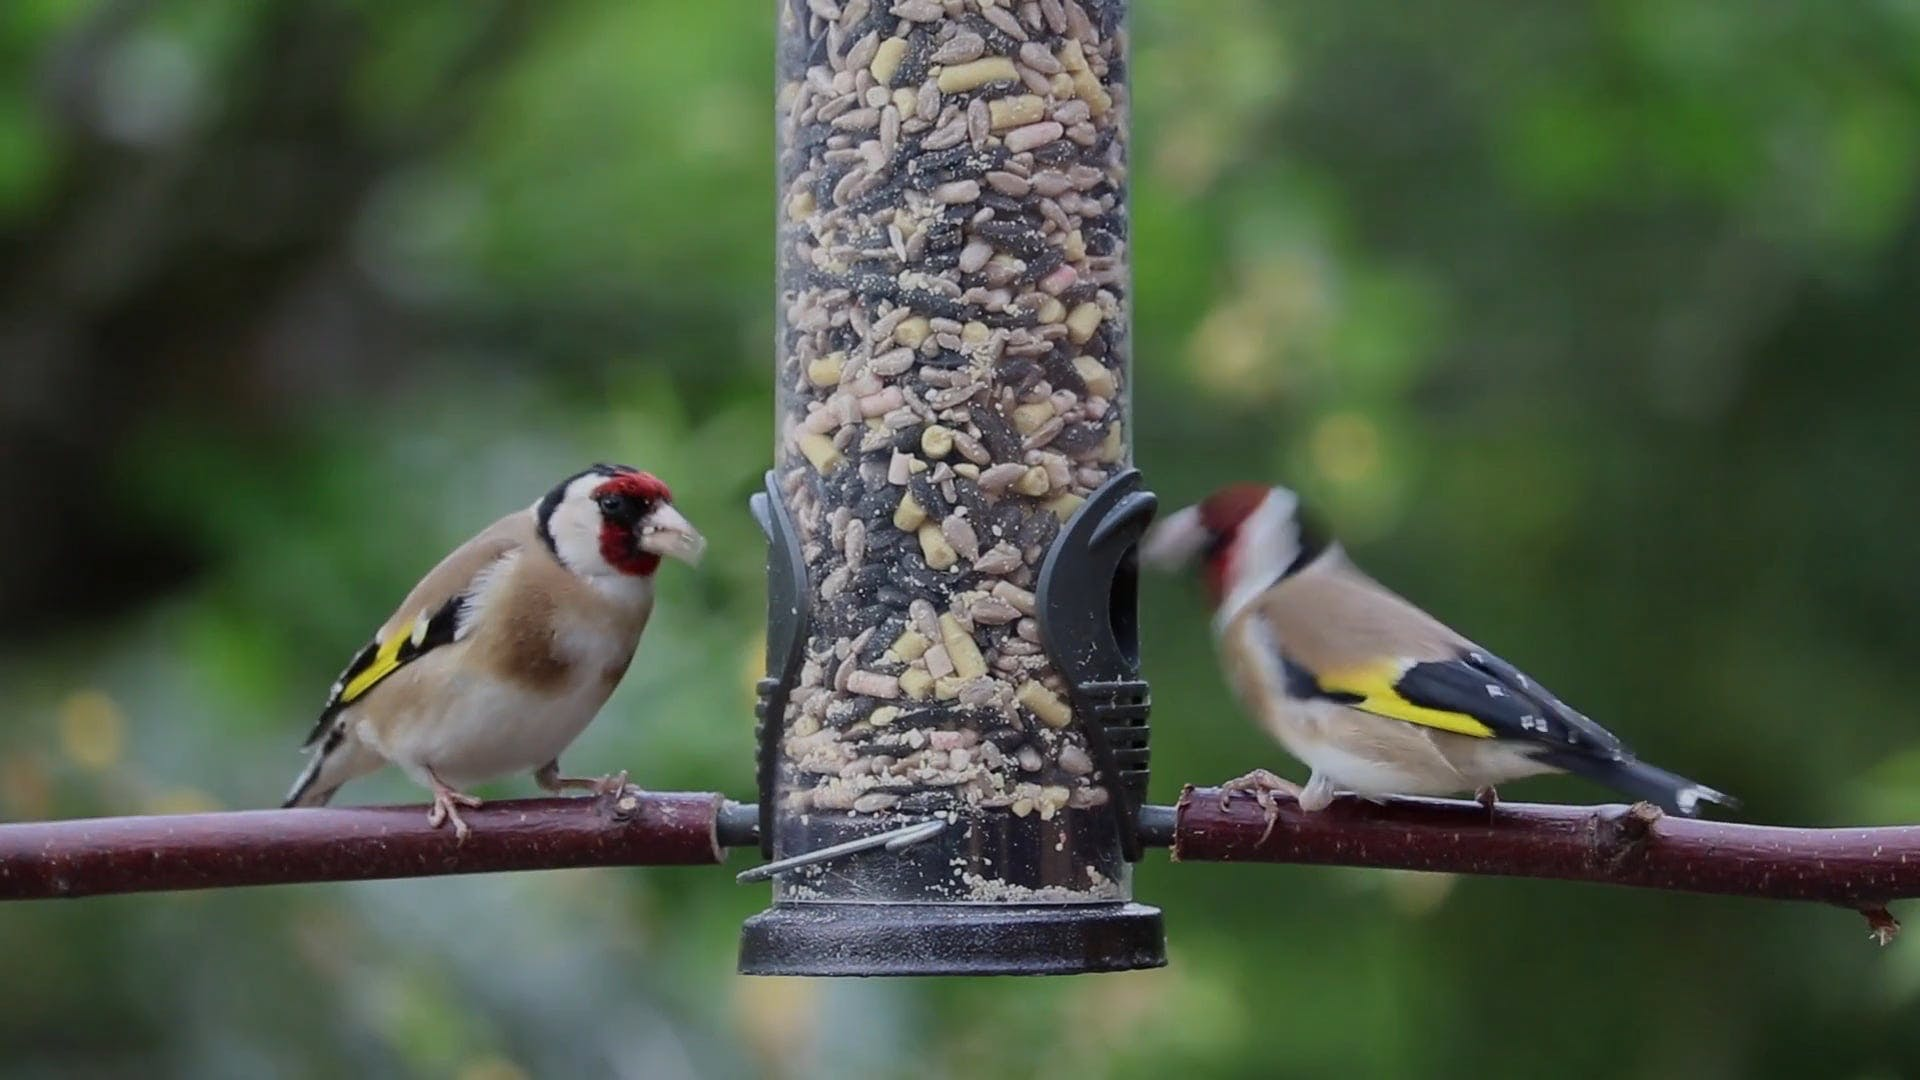 Video Of Goldfinches Eating